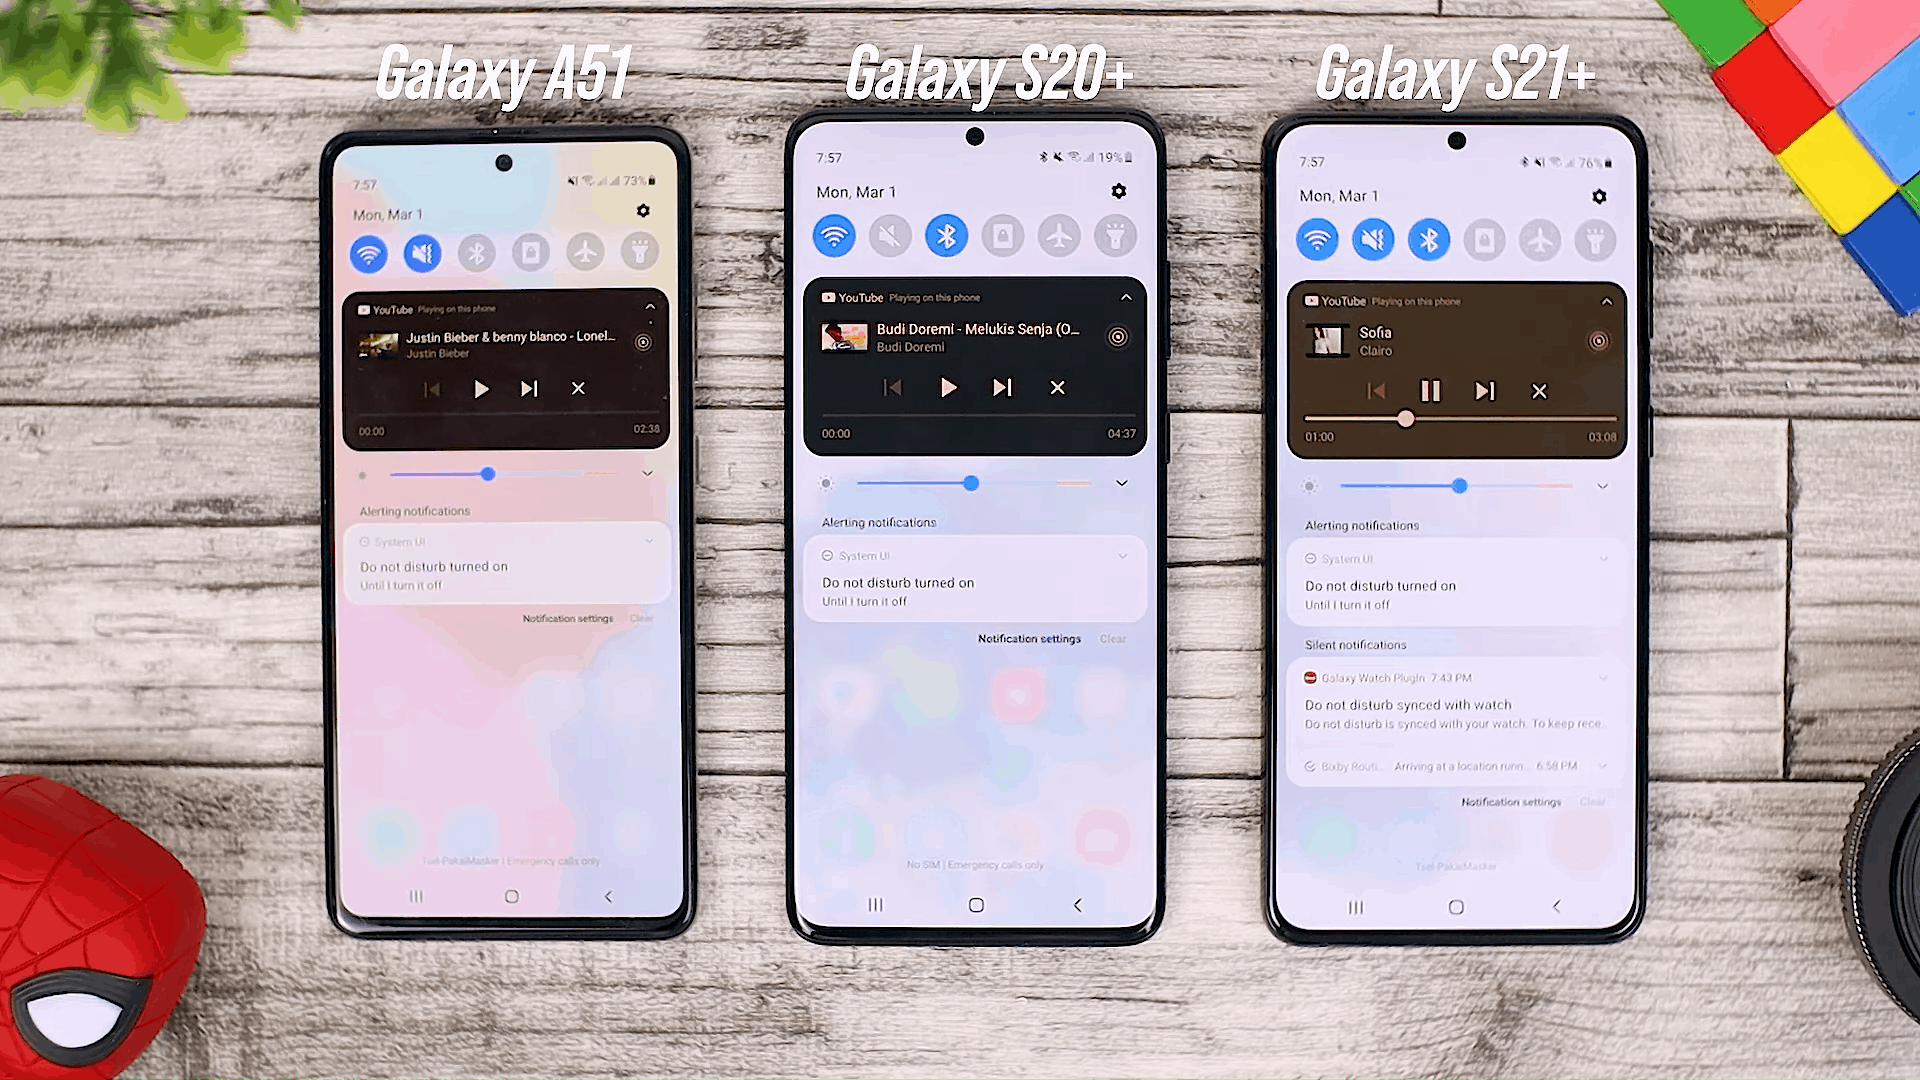 New Feature in Media Control - One UI 3.0 features of Samsung Galaxy A51 and its comparison with the Galaxy S20+ and One UI 3.1 on the Galaxy S21+